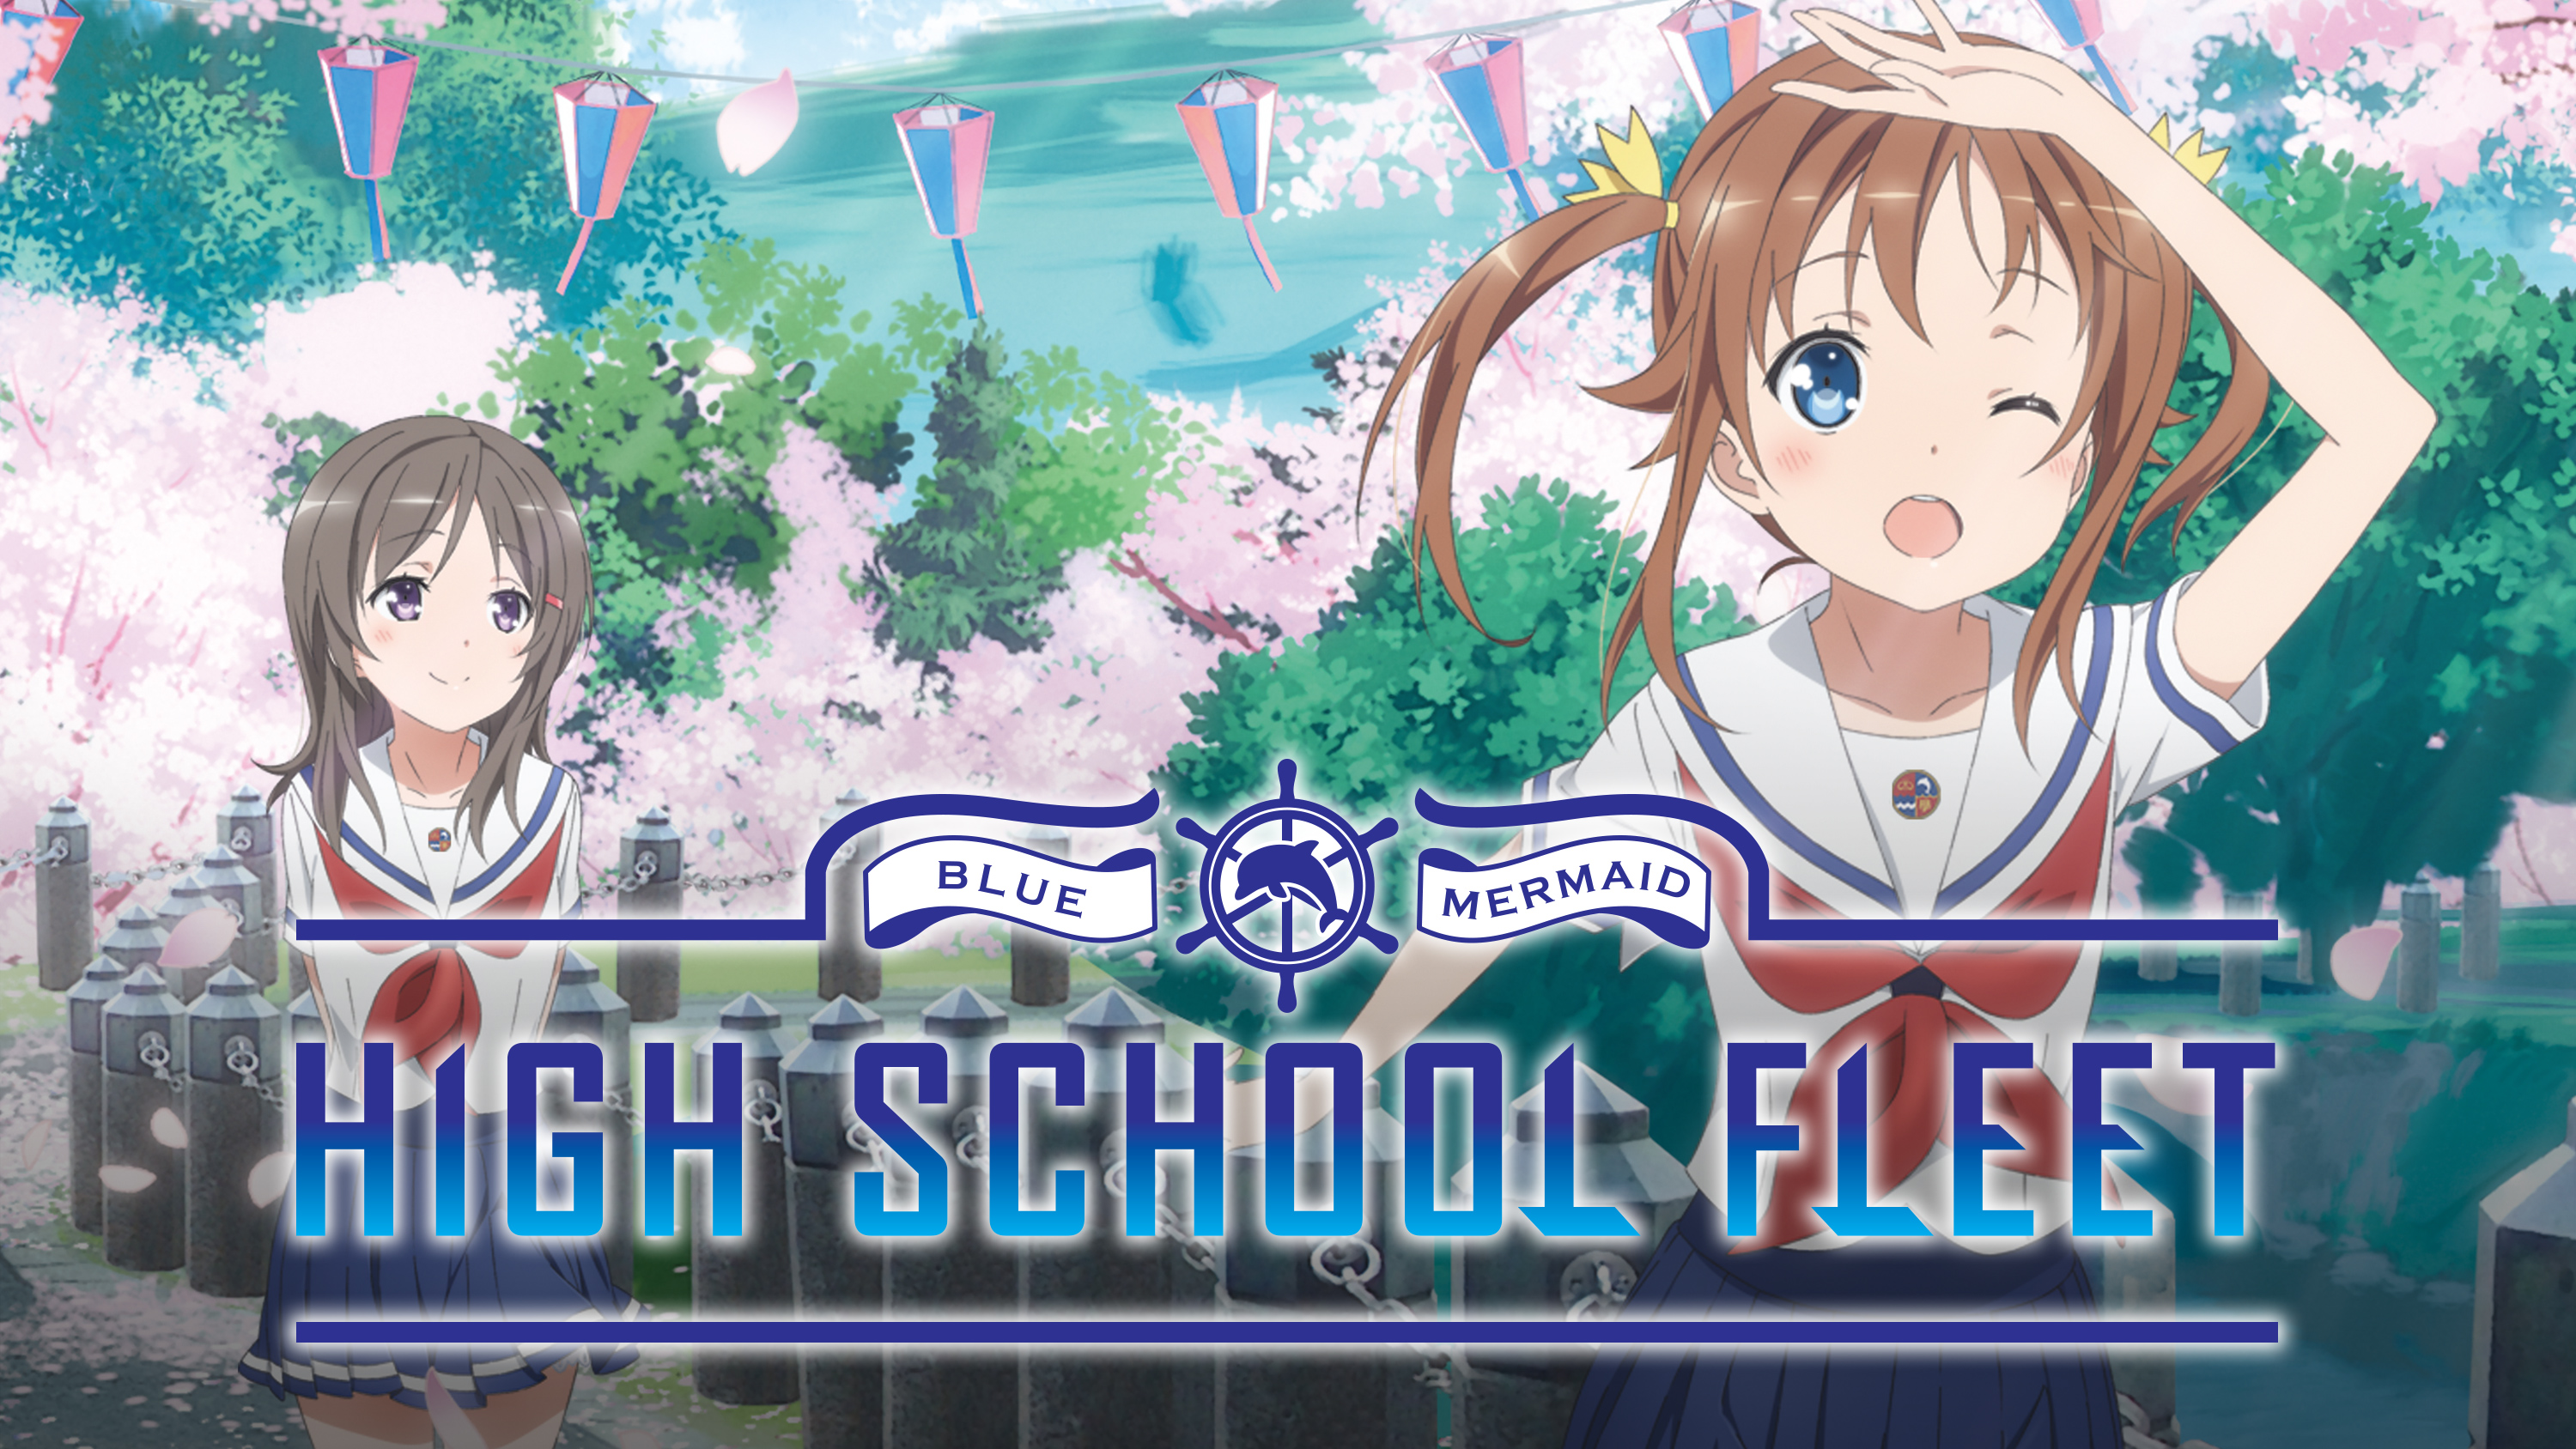 Watch high school fleet episodes sub action adventure shoujo anime funimation